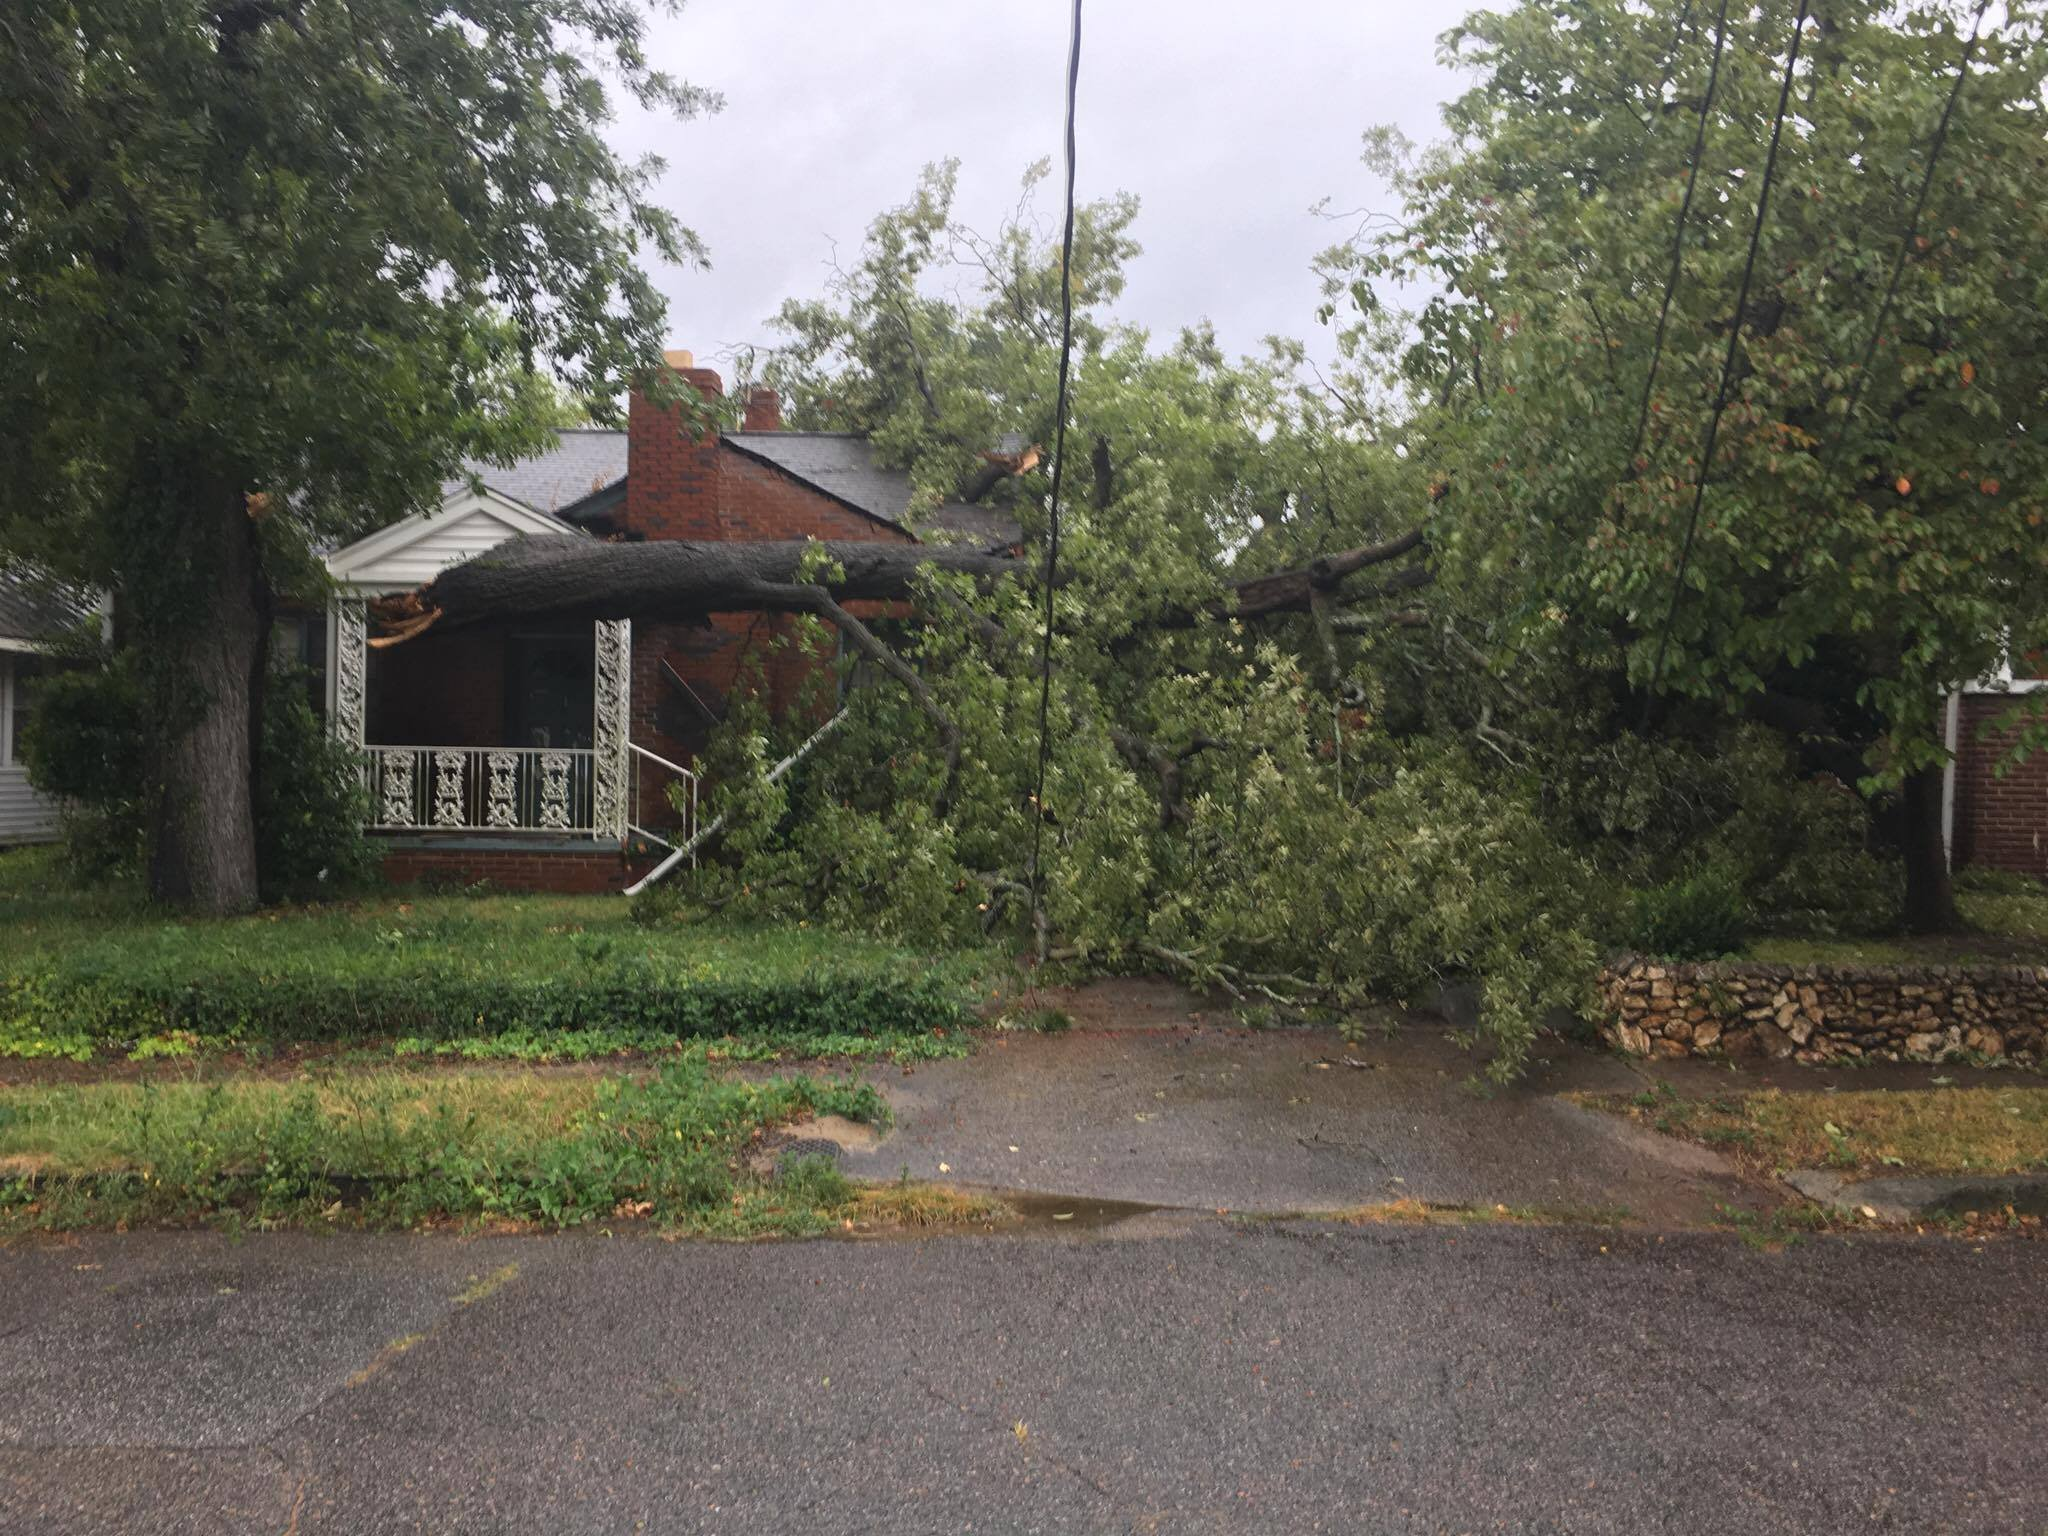 Tree down in front of a home on Woodrow St. (source: John Luther / Facebook)